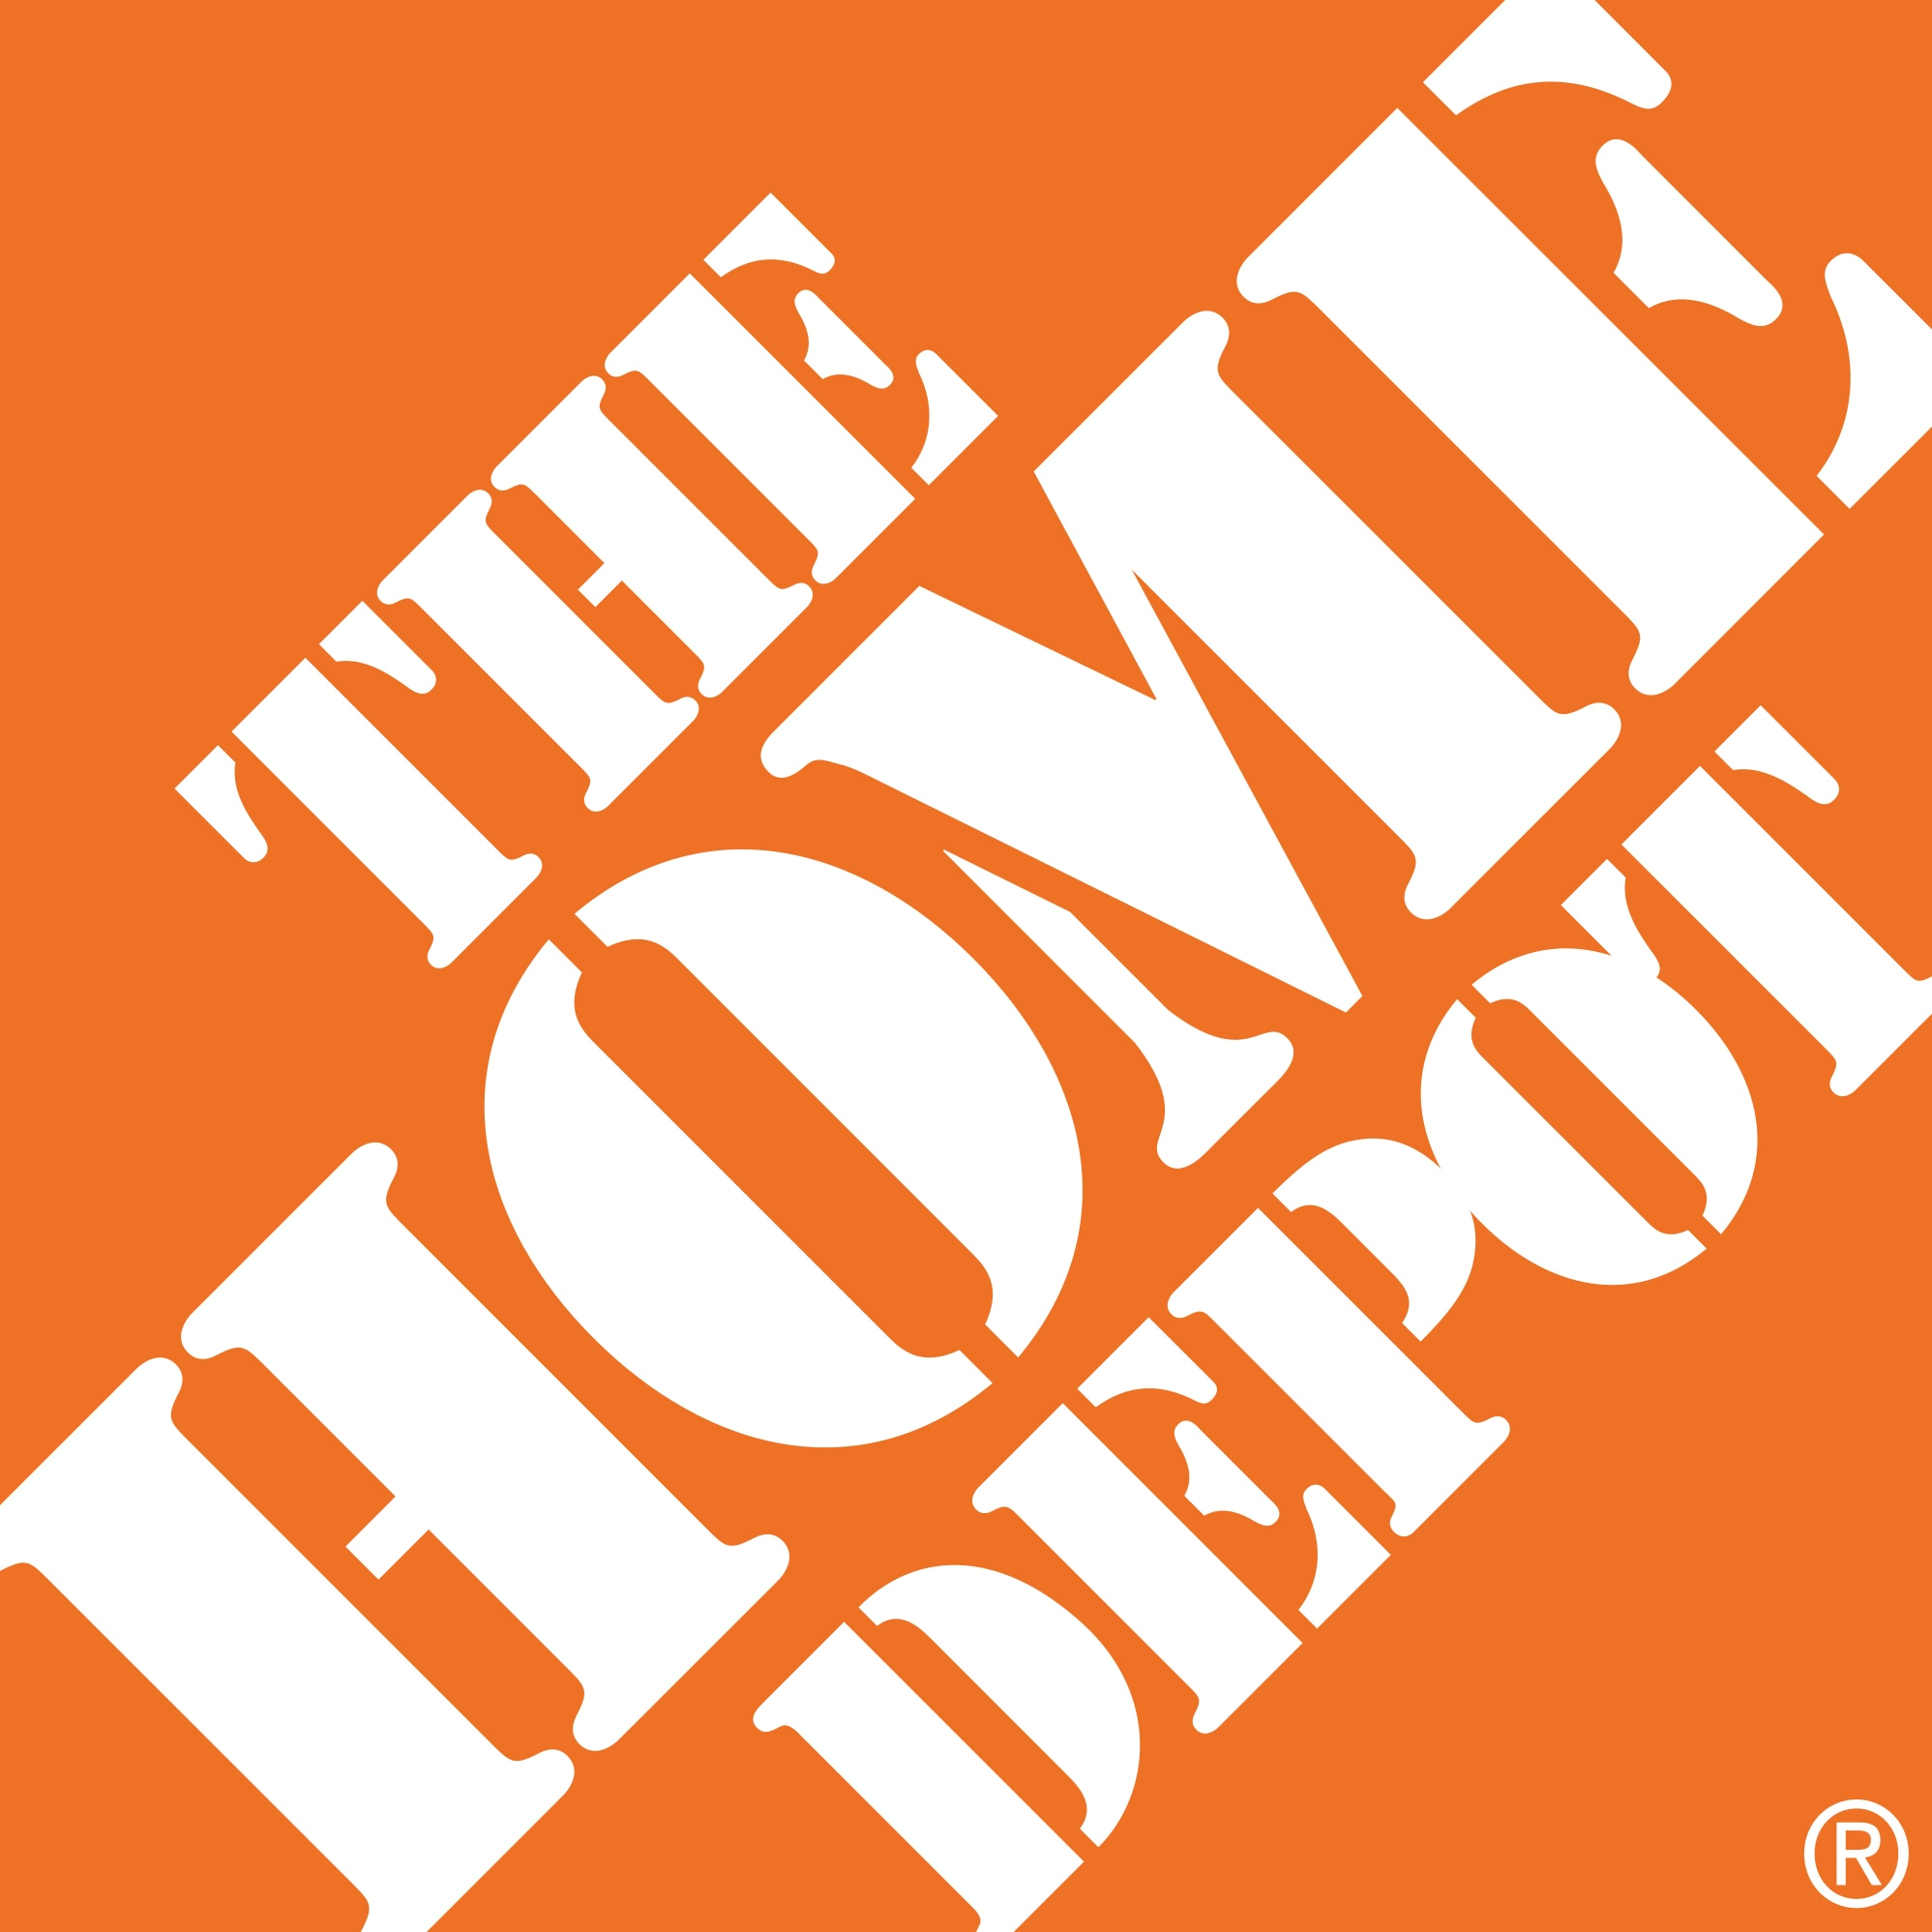 Shop homedepot.com